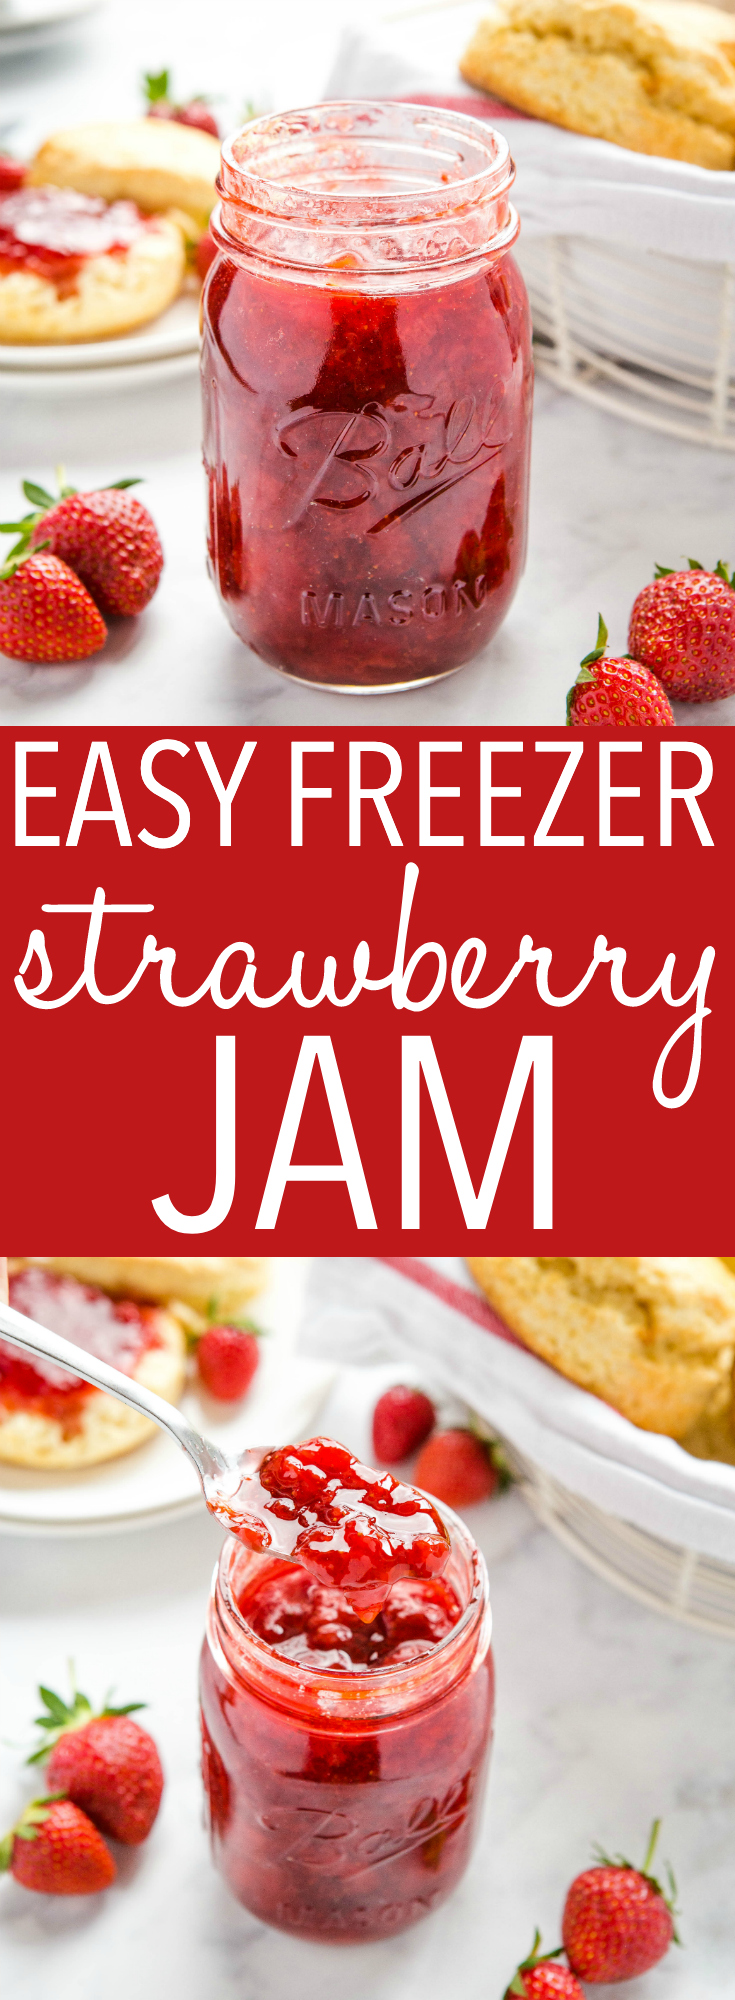 This Easy Strawberry Freezer Jam is a simple and easy homemade jam recipe made with fresh strawberries! Only 3 ingredients, no pectin, and no canning required! Recipe from thebusybaker.ca! #jam #strawberryjam #homemadejam #freezerjam #summer #strawberryrecipes via @busybakerblog